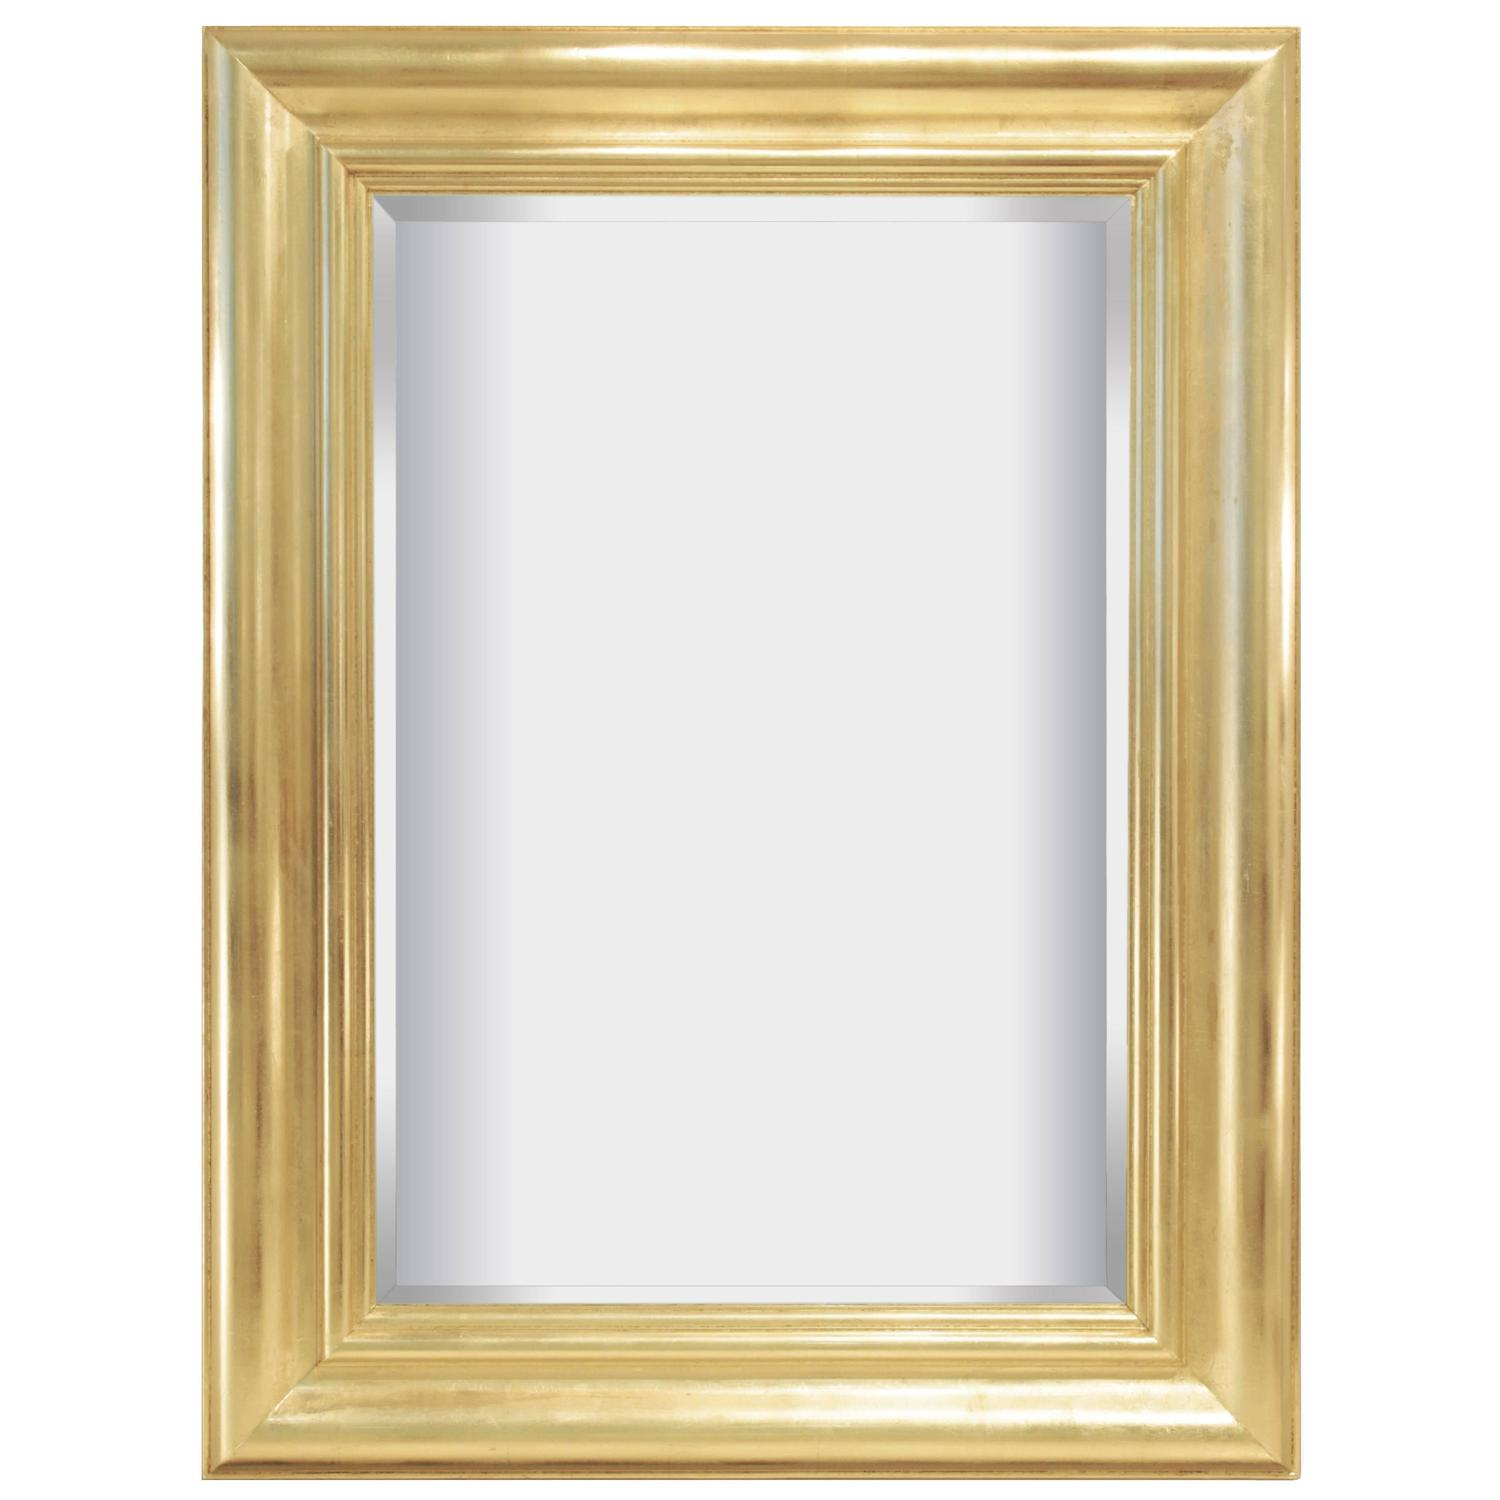 Large Mirror with Frame in Gold Leaf by Karl Springer For Sale at ...